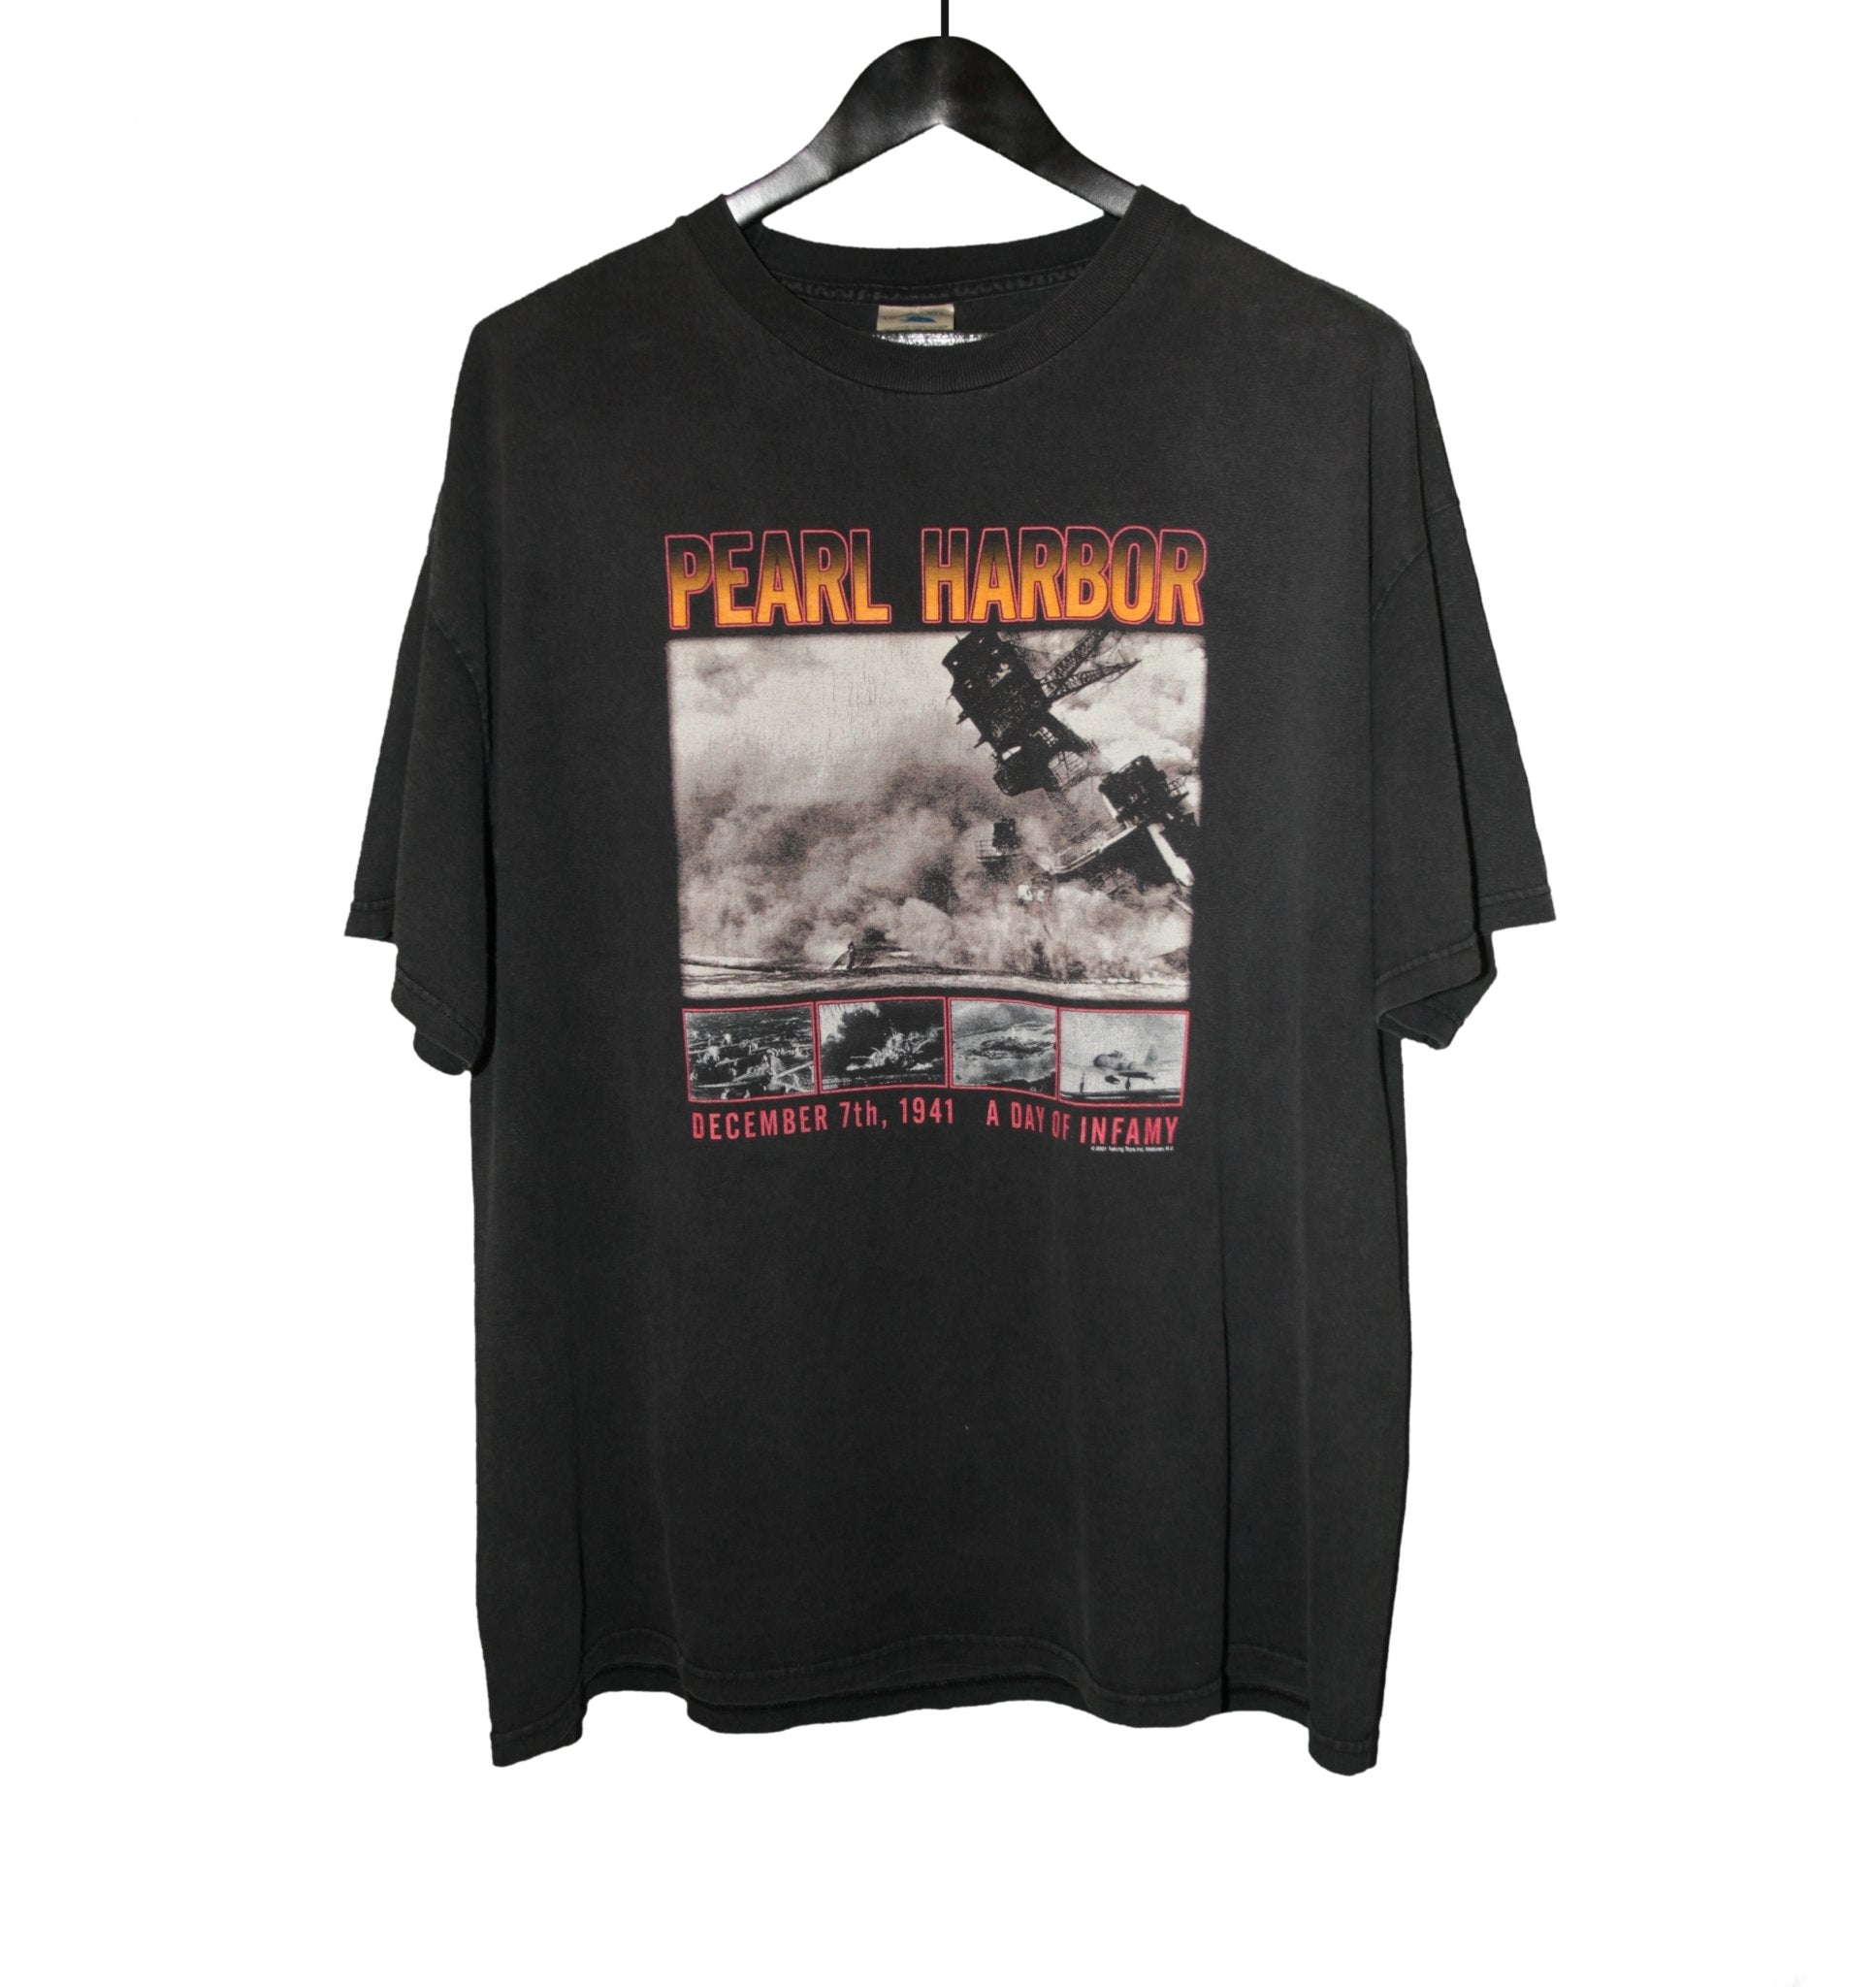 Pearl Harbor 2001 Movie Shirt - Faded AU